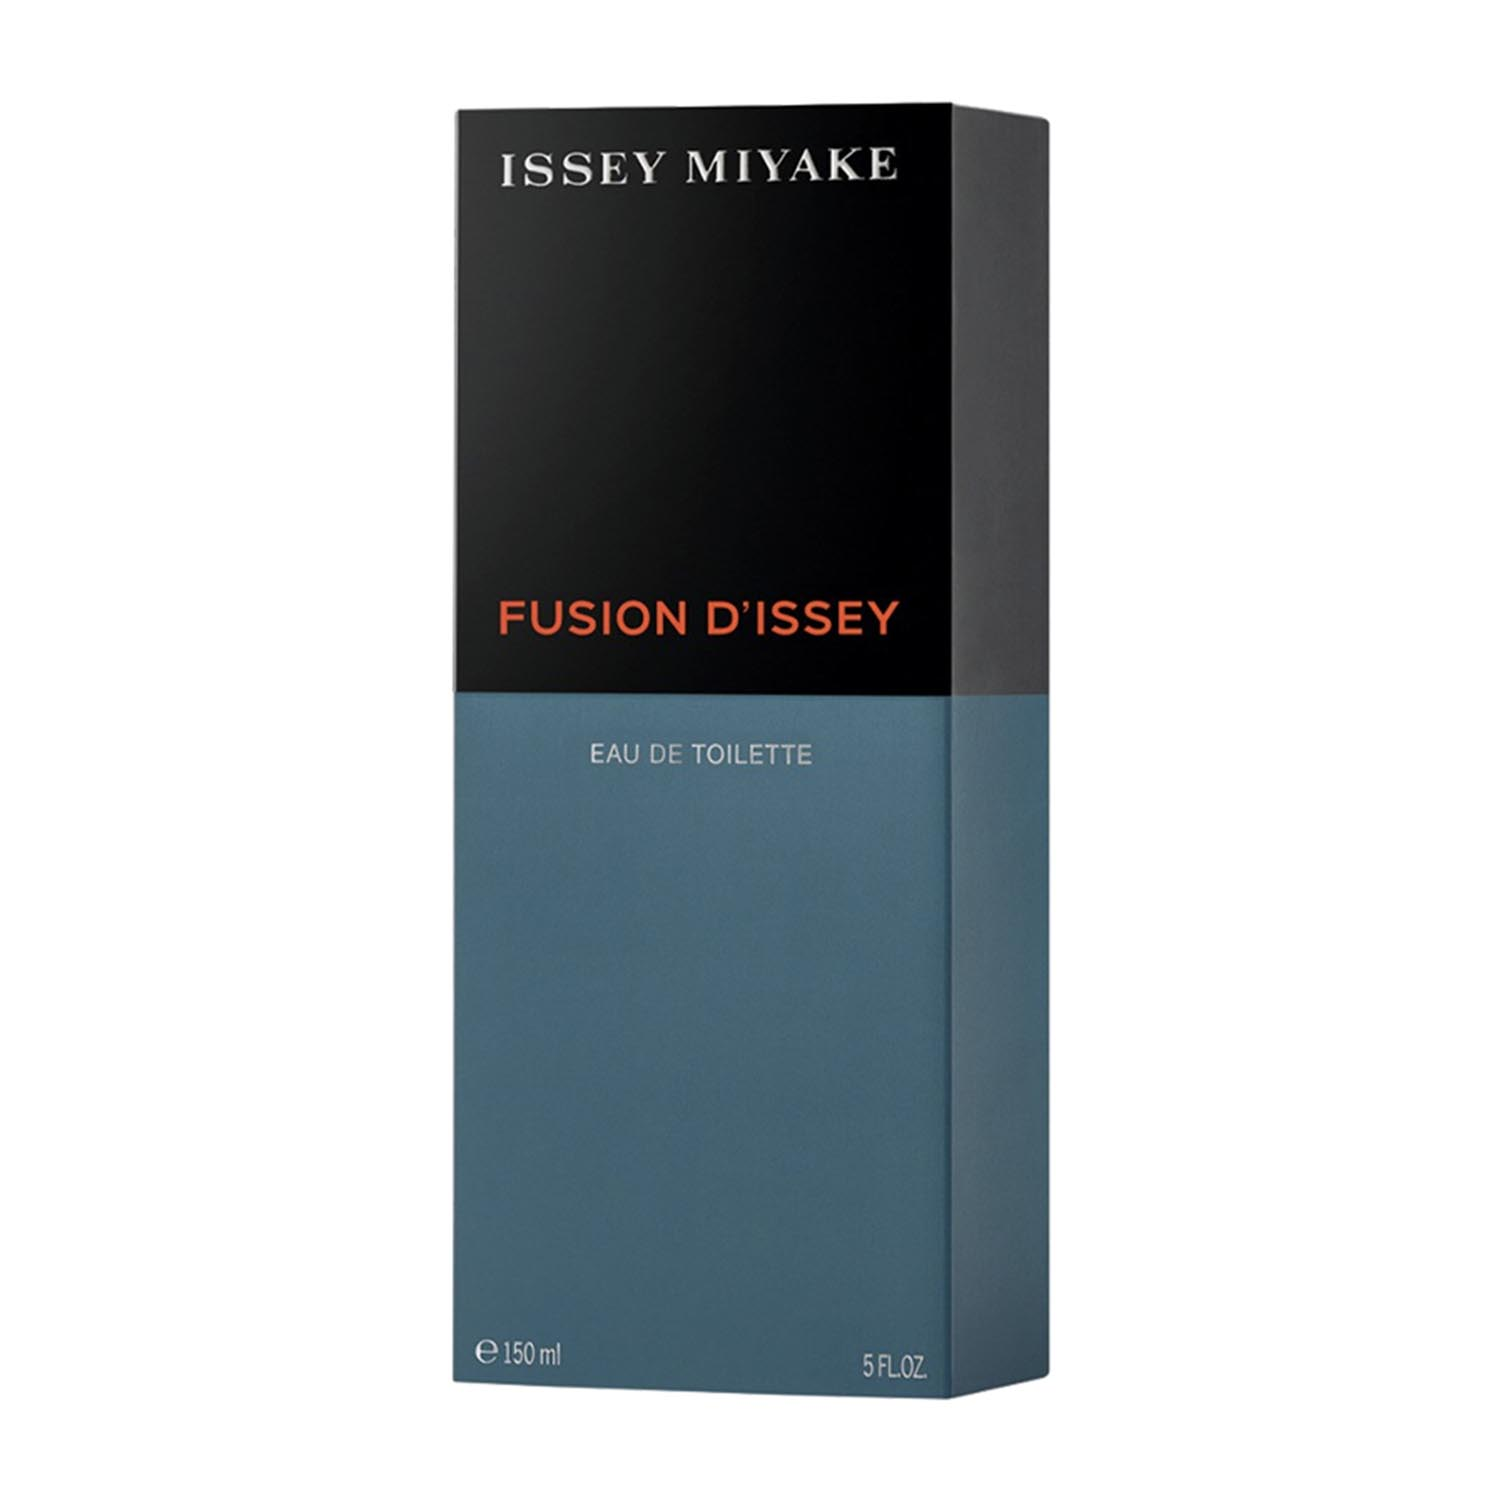 Issey miyake fussion d issey eau de toilette 150ml